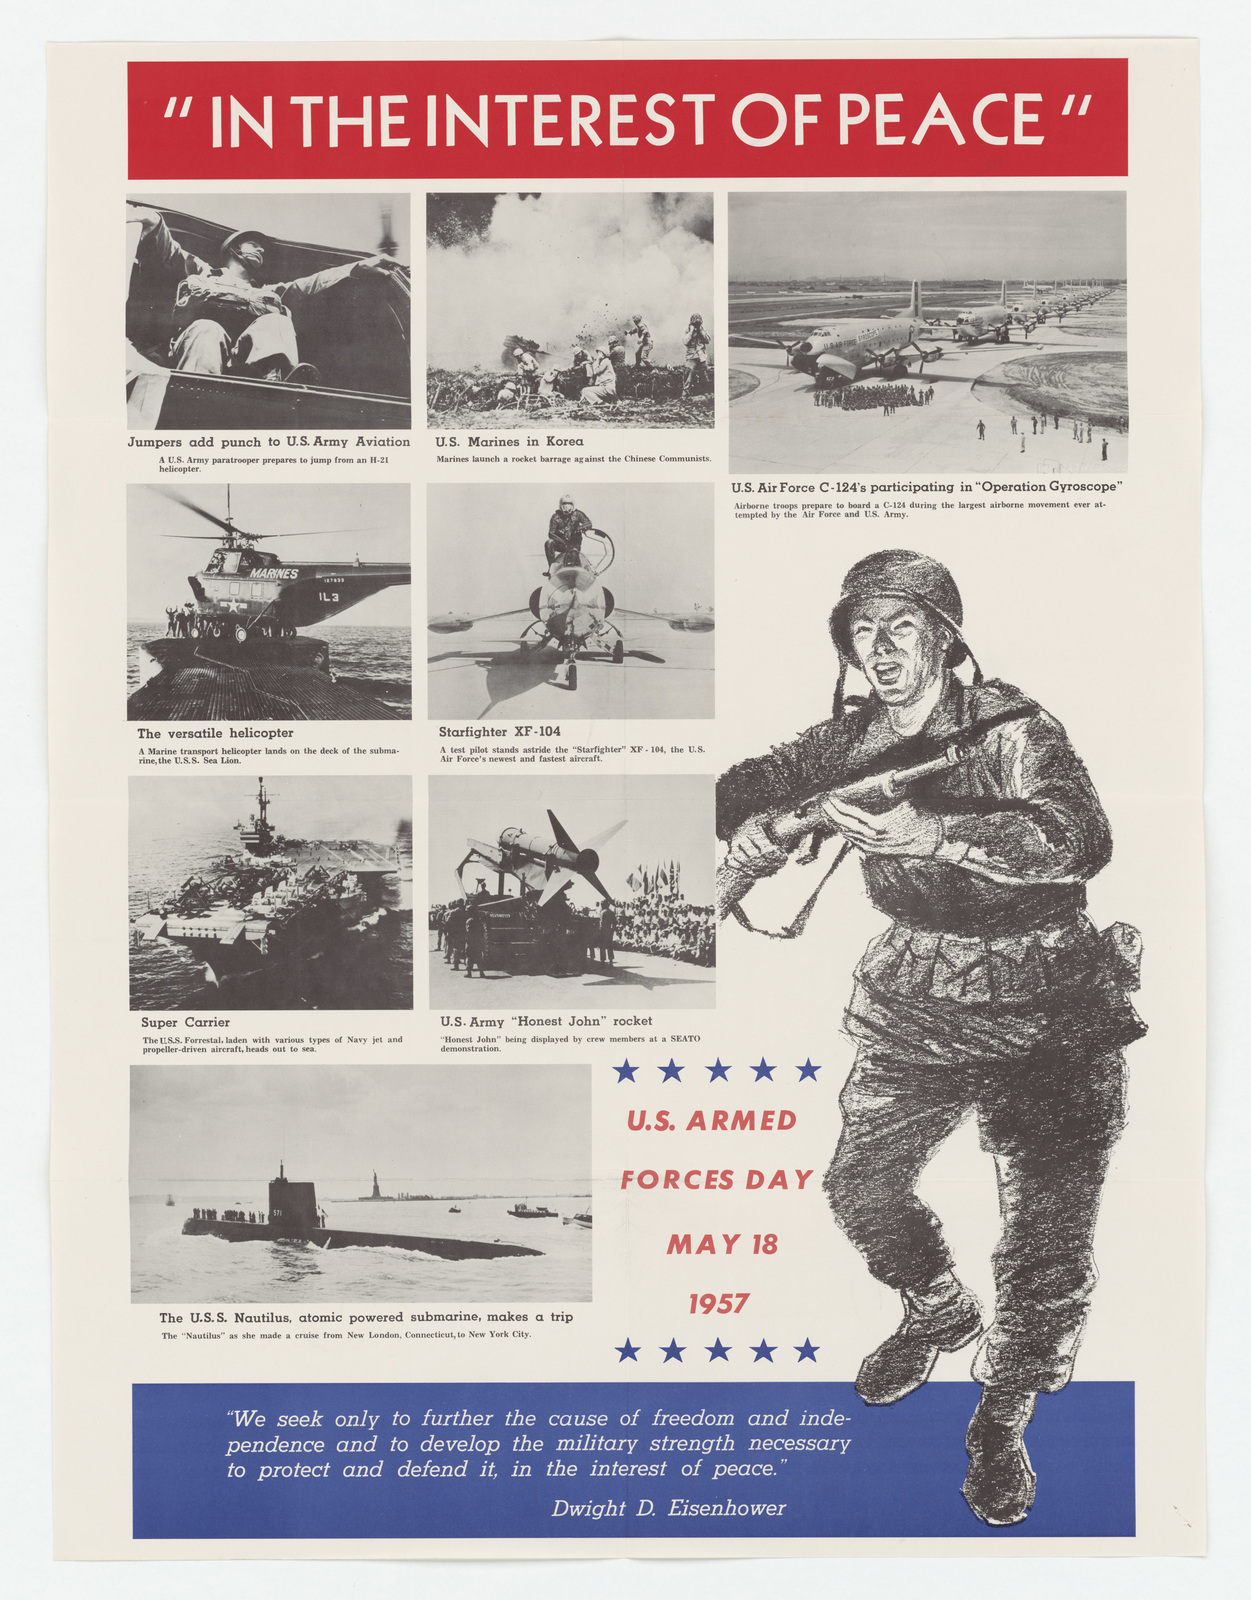 U.S. Armed Forces Day Poster